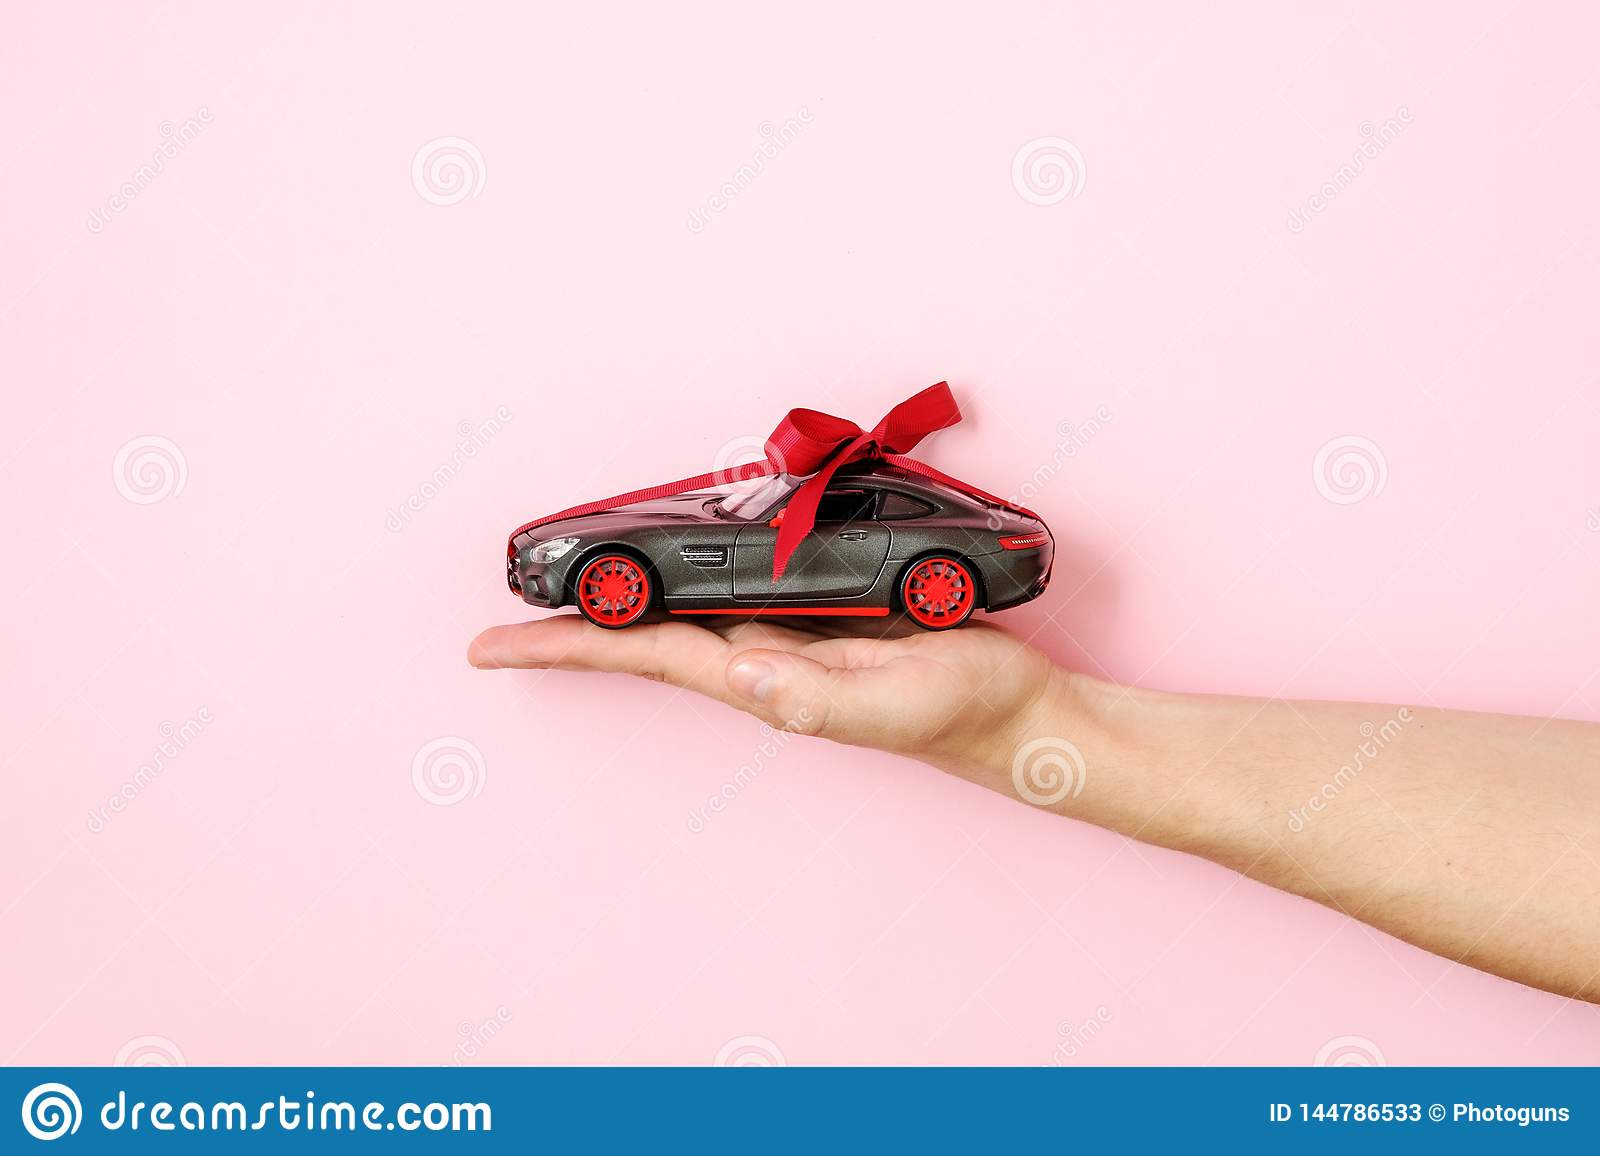 Human Hand Holding Toy Car Model Tied With A Red Ribbon And Bow On